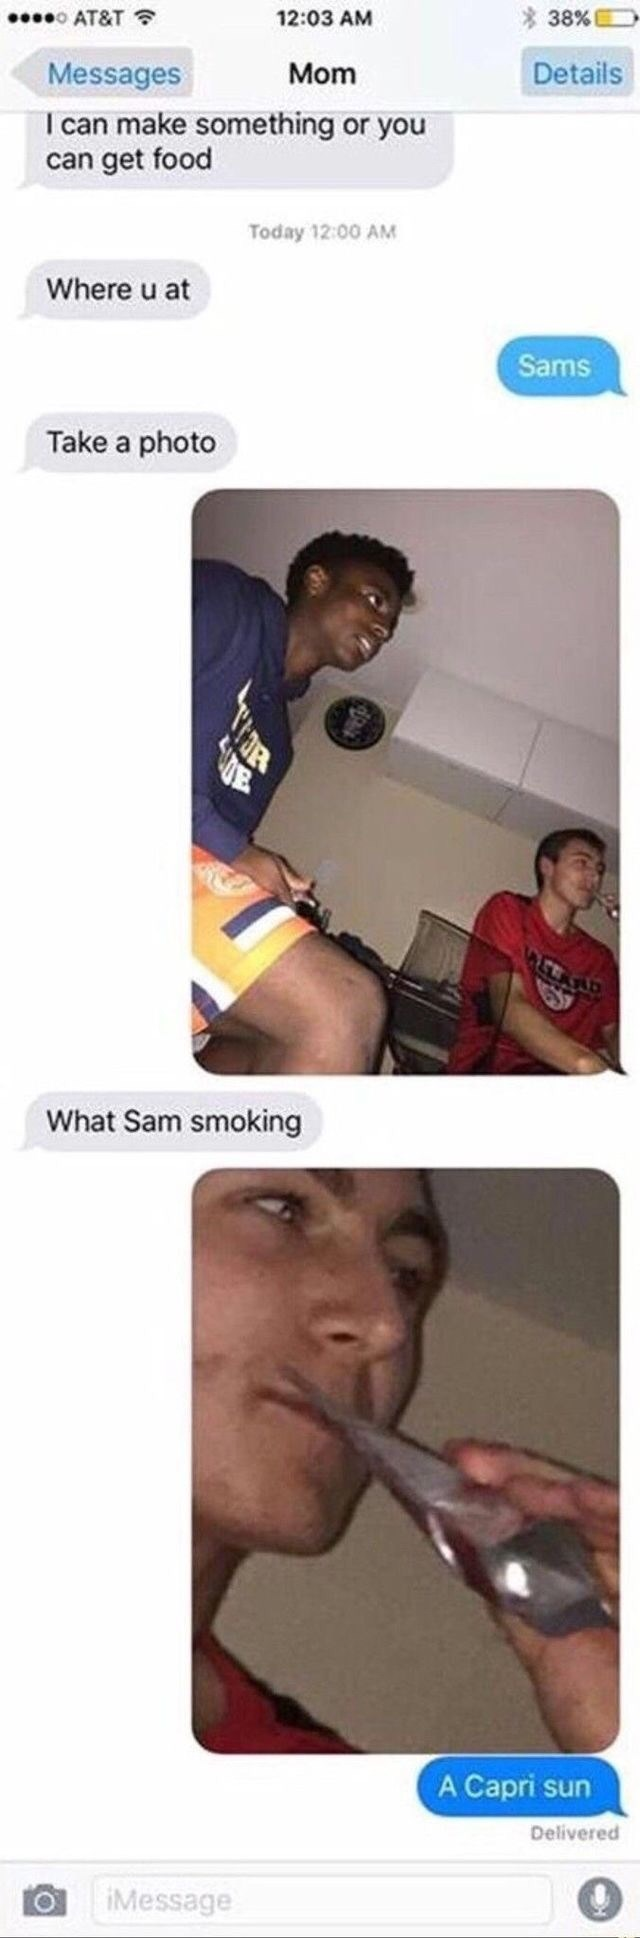 Face - o AT&T 38% 12:03 AM Details Mom Messages I can make something or you can get food Today 12:00 AM Where u at Sams Take a photo What Sam smoking A Capri sun Delivered iMessage